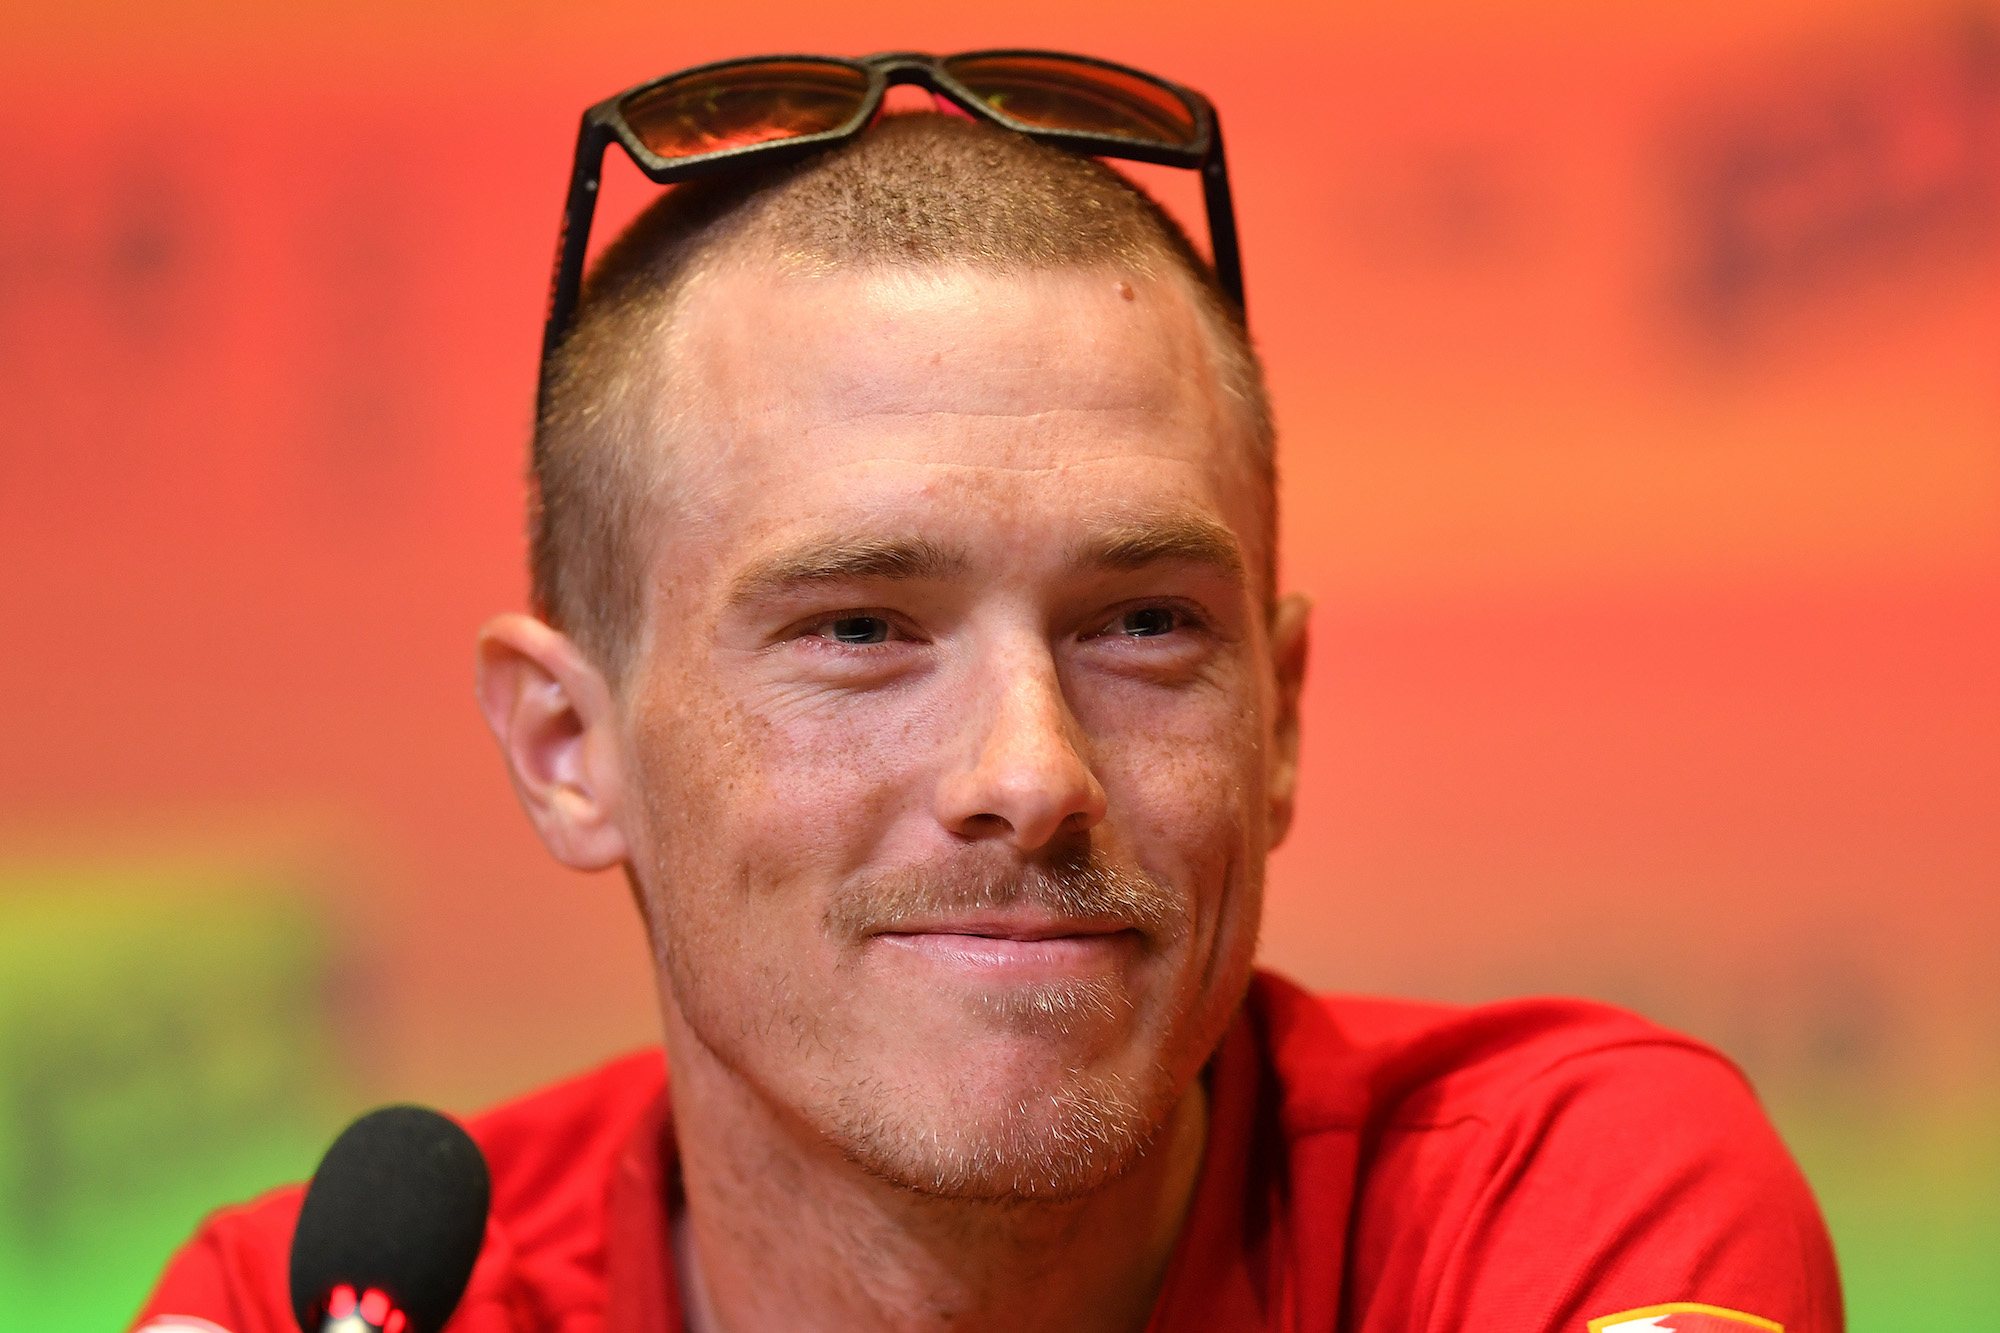 Bahrain-Merida terminate contract with Rohan Dennis